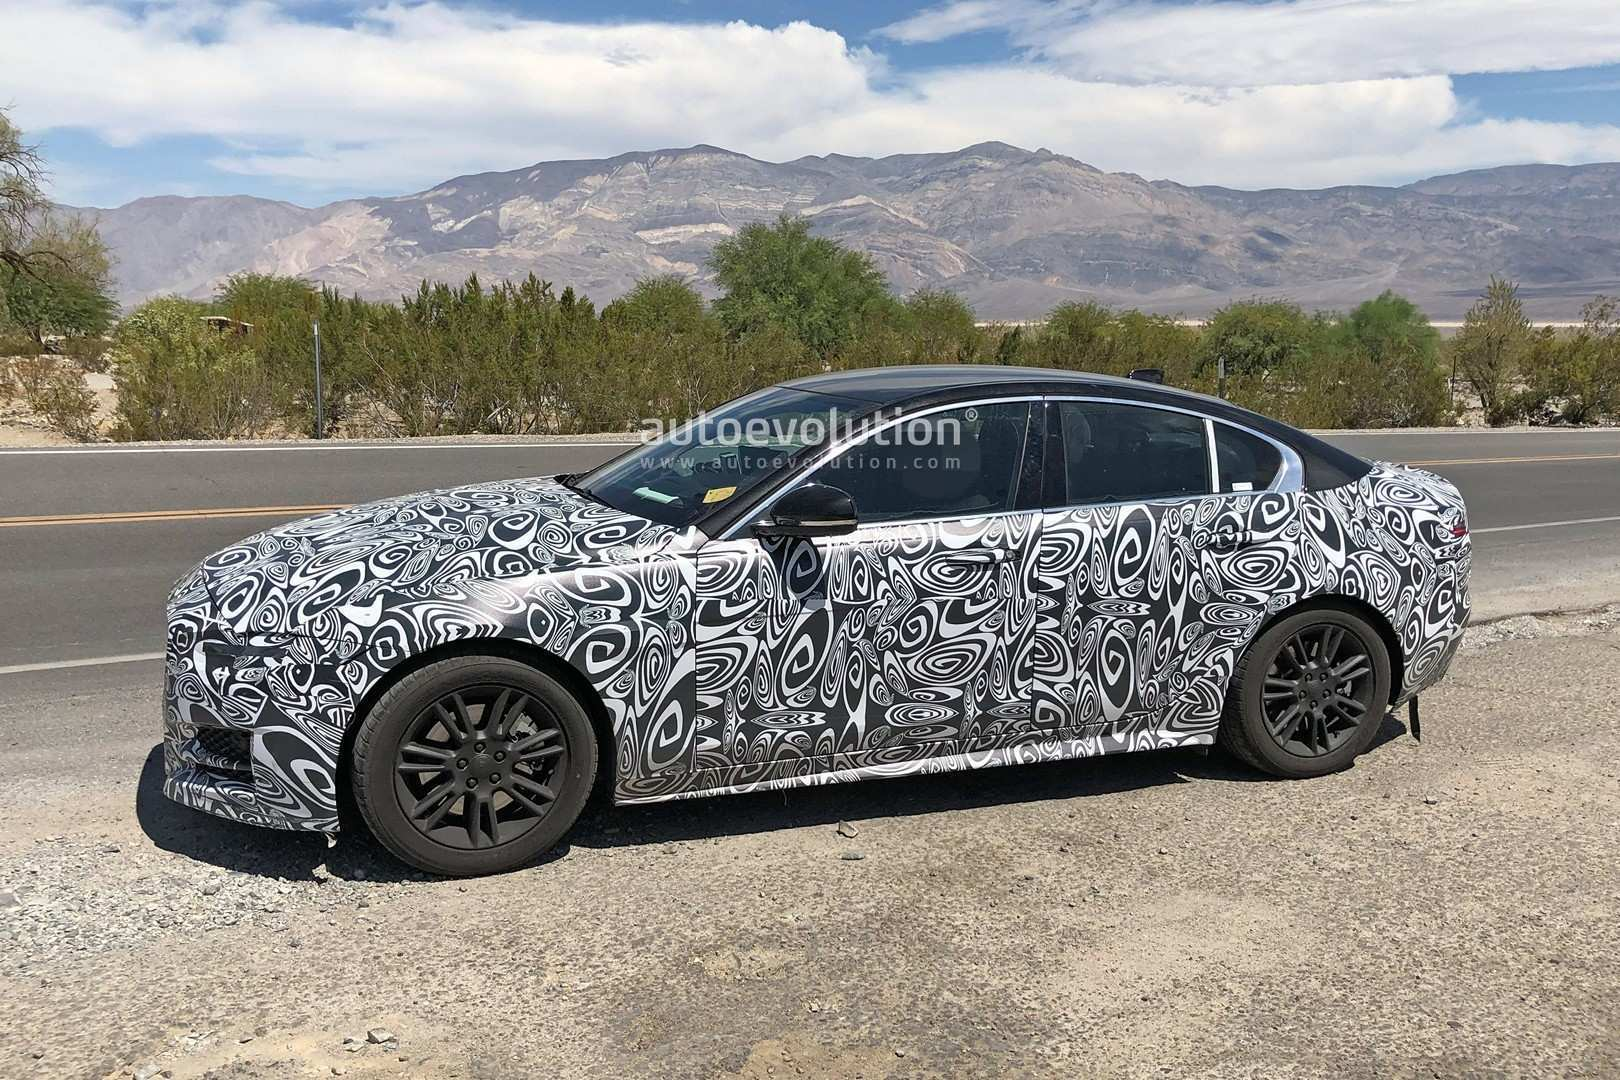 79 New 2020 Jaguar XF Spesification